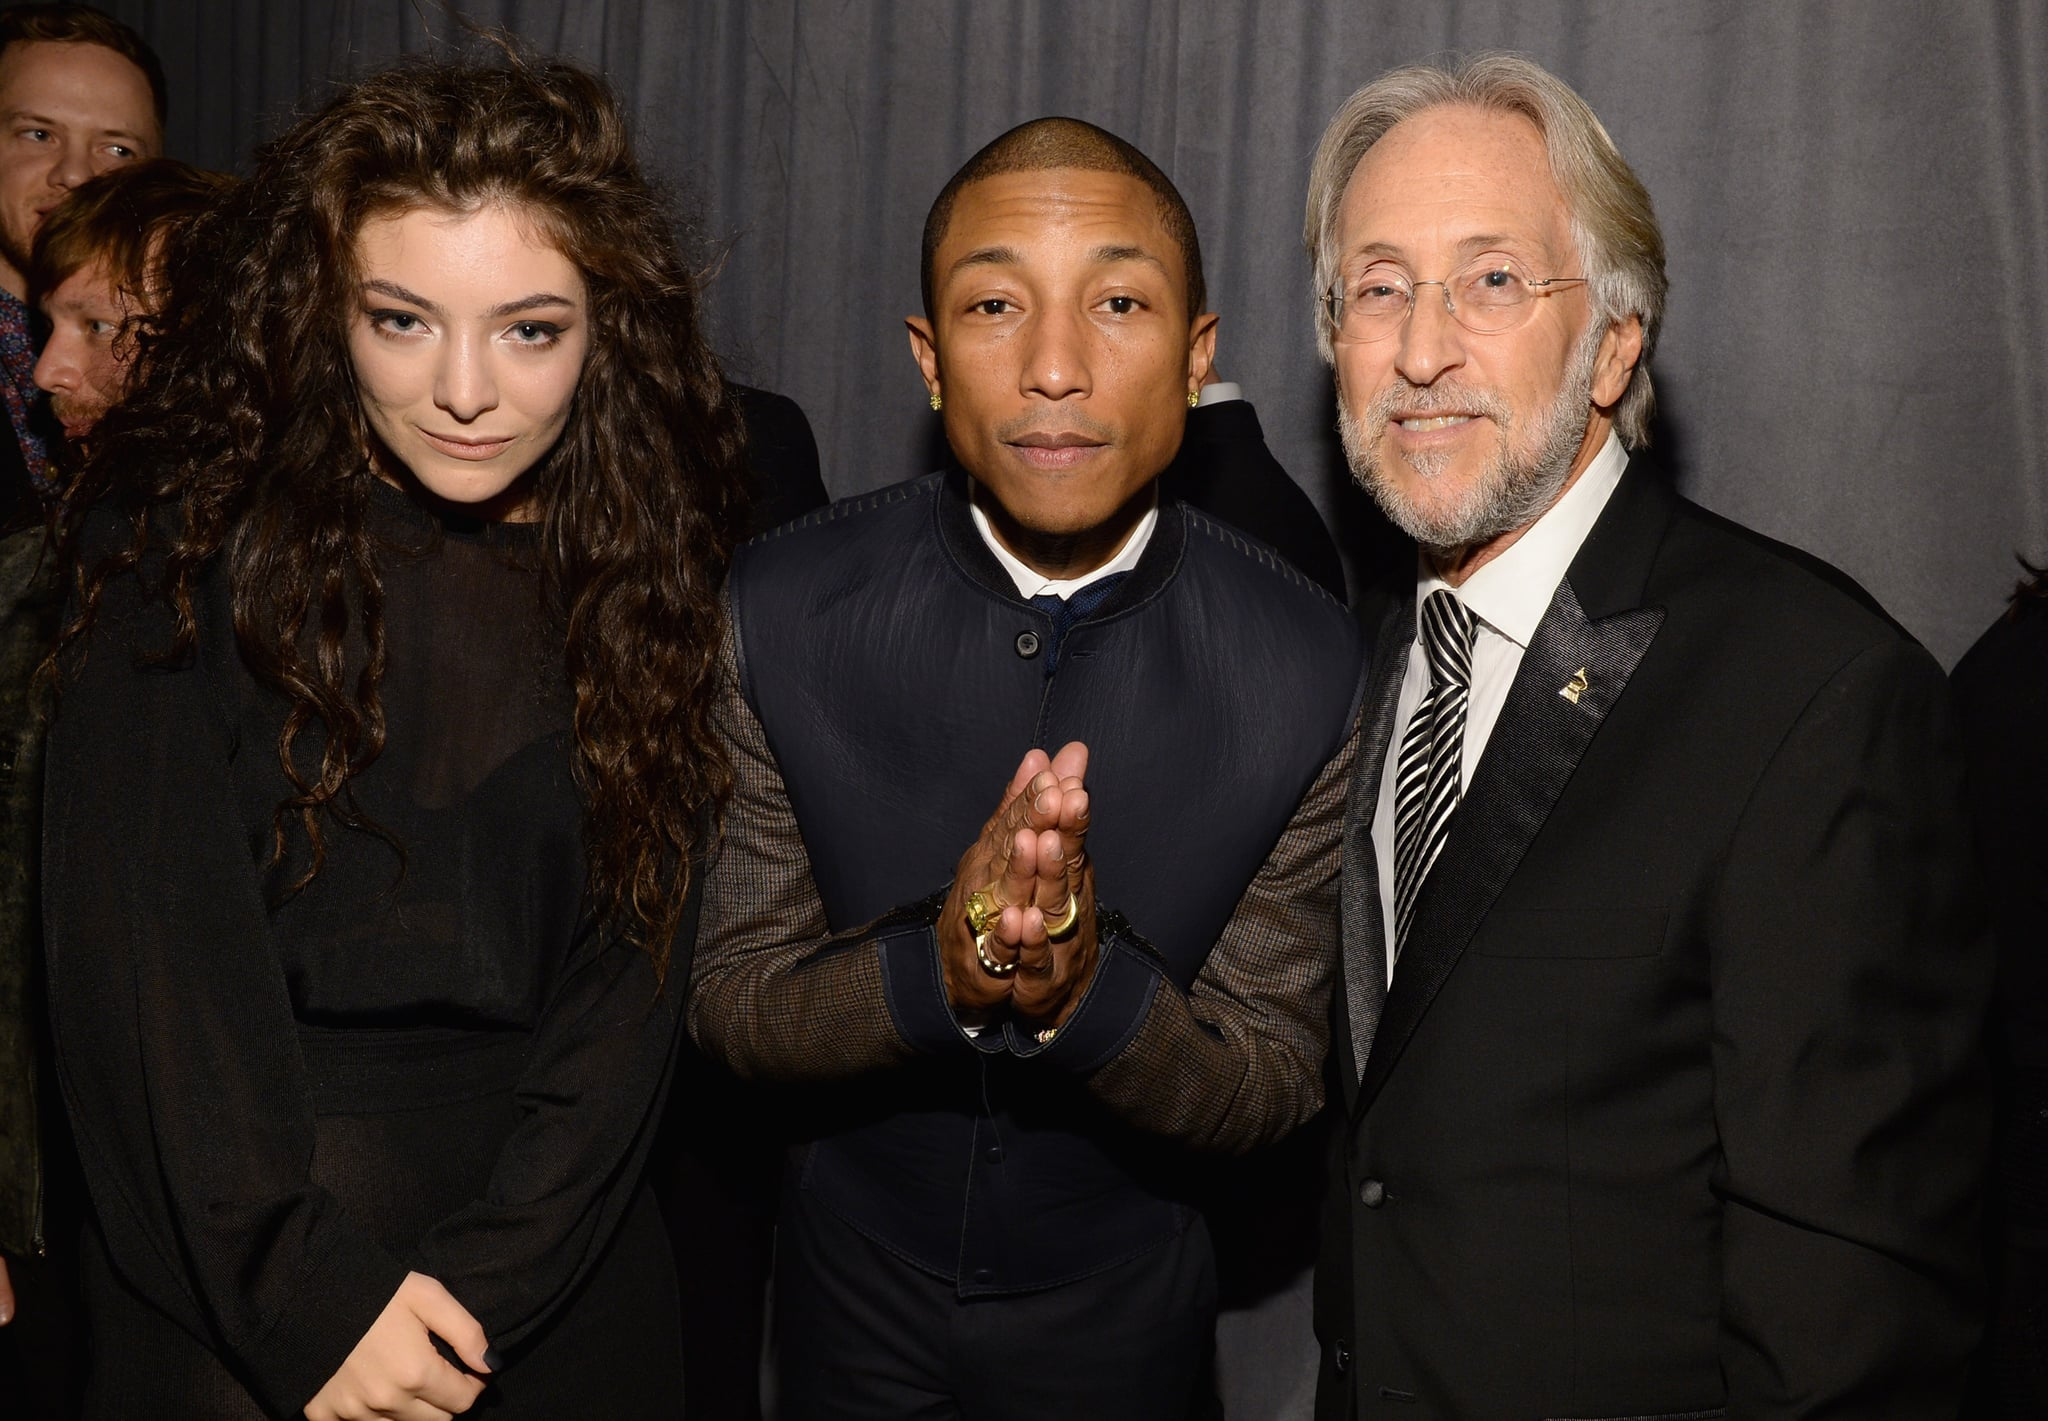 Lorde and Pharrell Williams gathered for a snap with Neil Portnow, CEO and president of the National Academy of Recording Arts and Sciences, who was honored at the party.